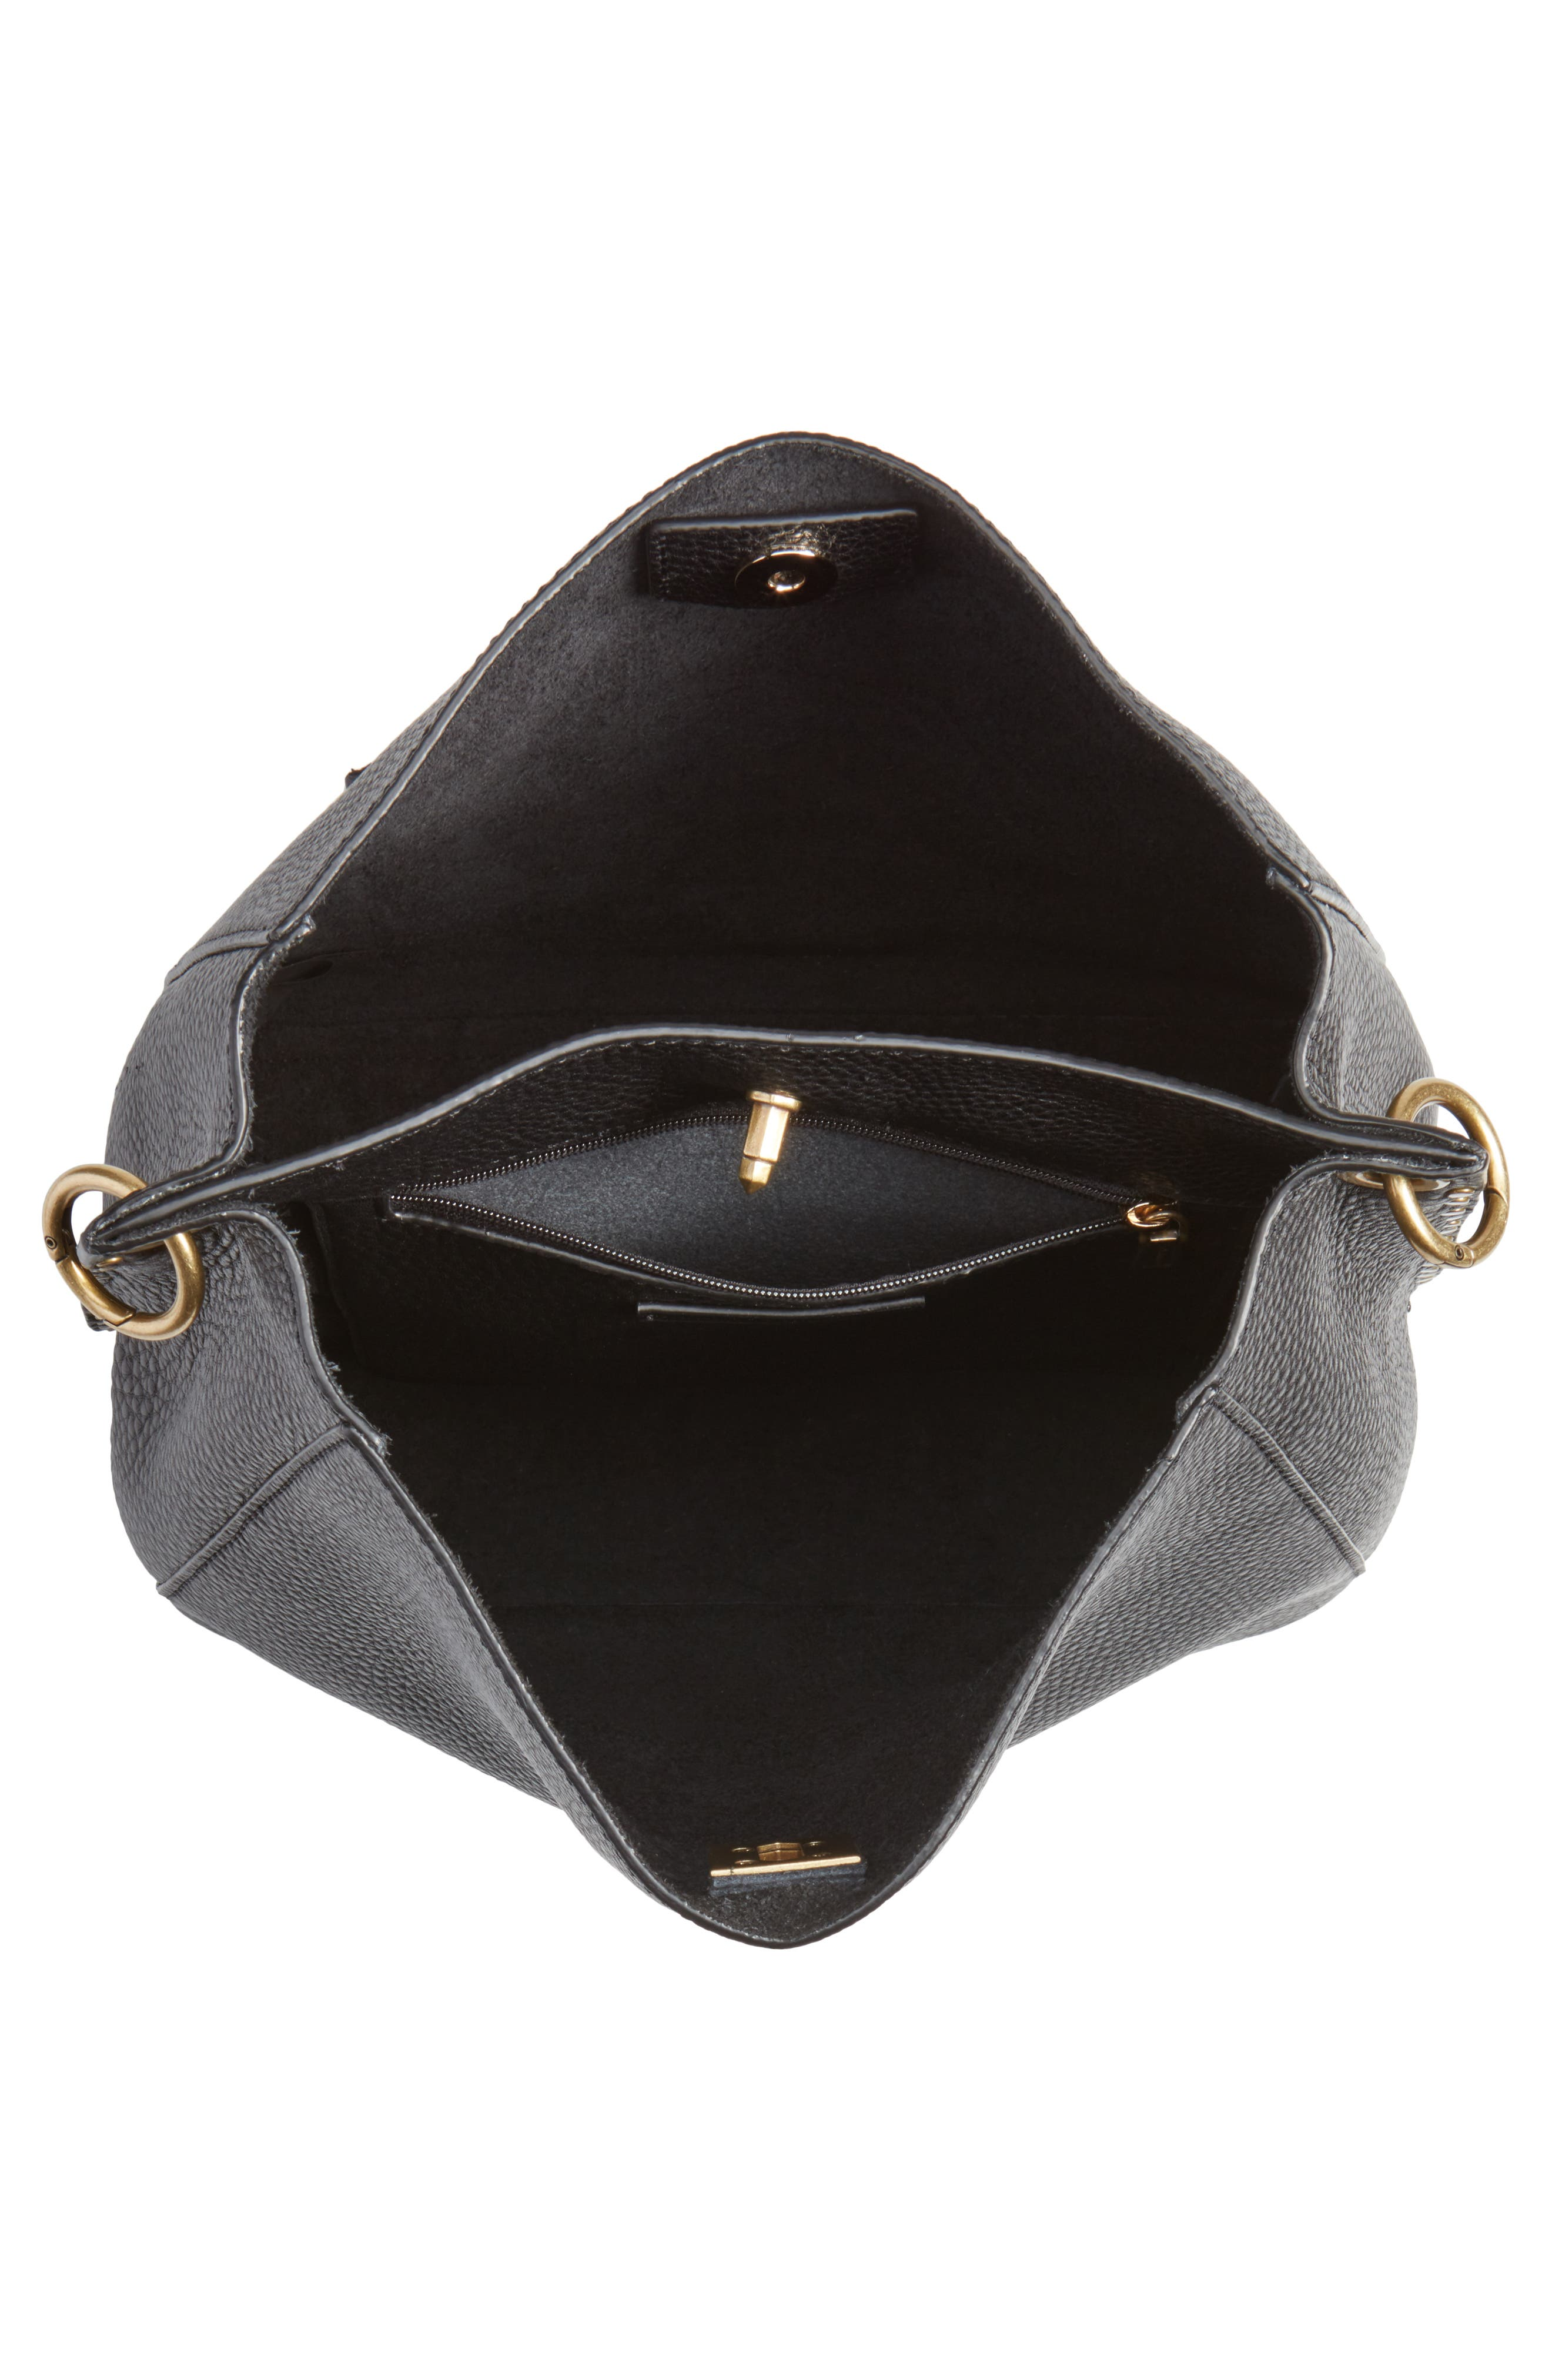 Darren Deerskin Leather Shoulder Bag,                             Alternate thumbnail 4, color,                             BLACK